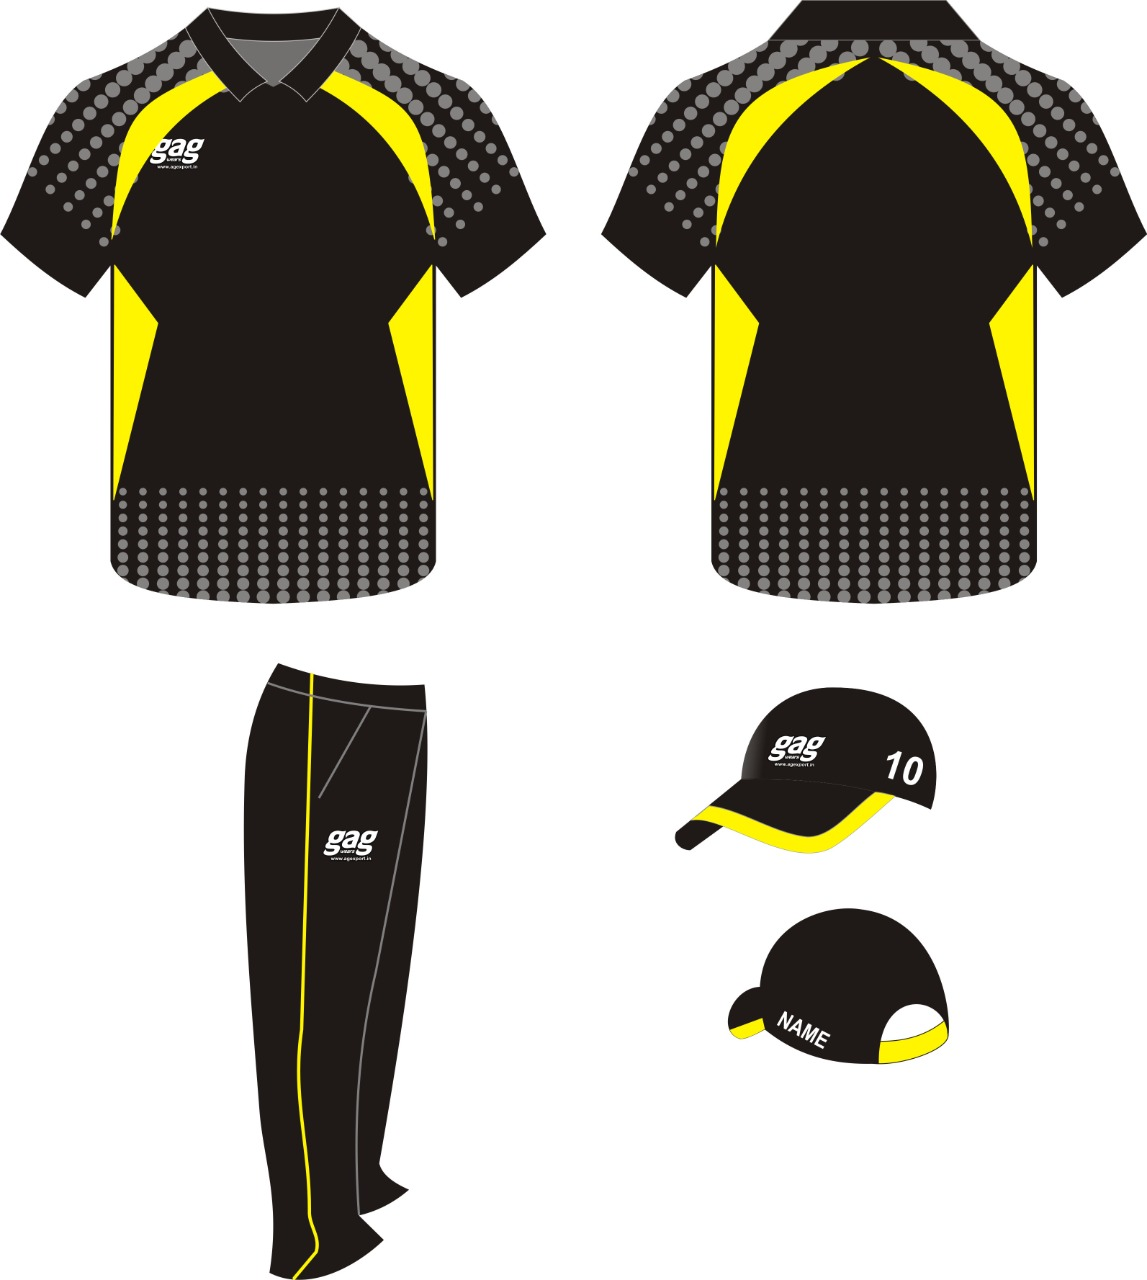 Indian Cricket Team Jersey Manufacturers in Jalandhar in Austria